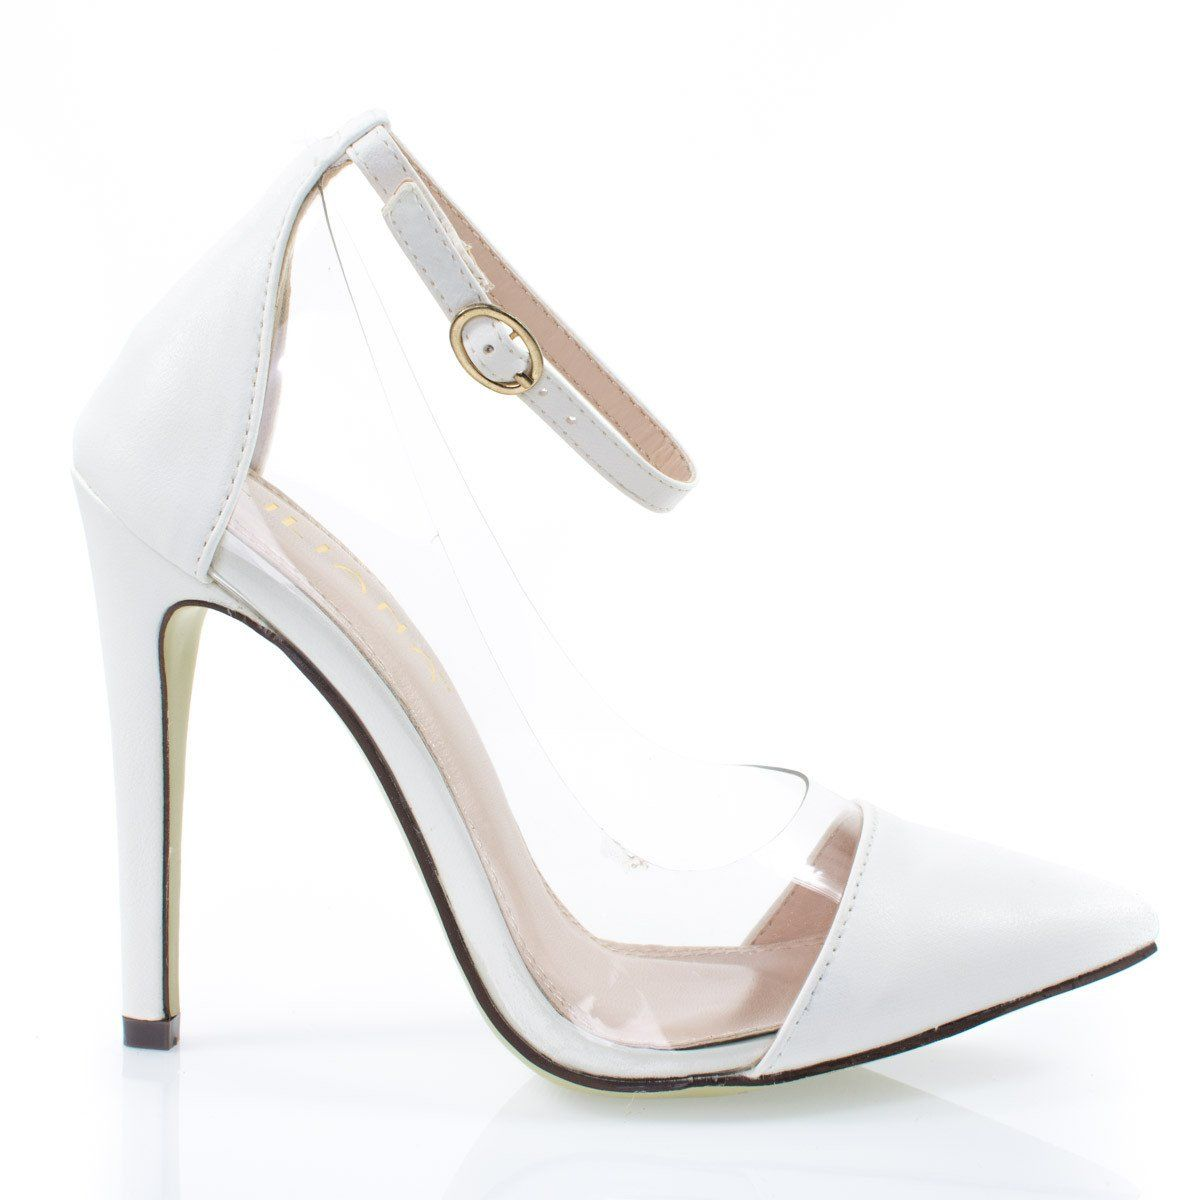 00ea744ed579f Olga1E By Liliana, Women's Clear Lucite Pump, Pointed Toe Ankle ...